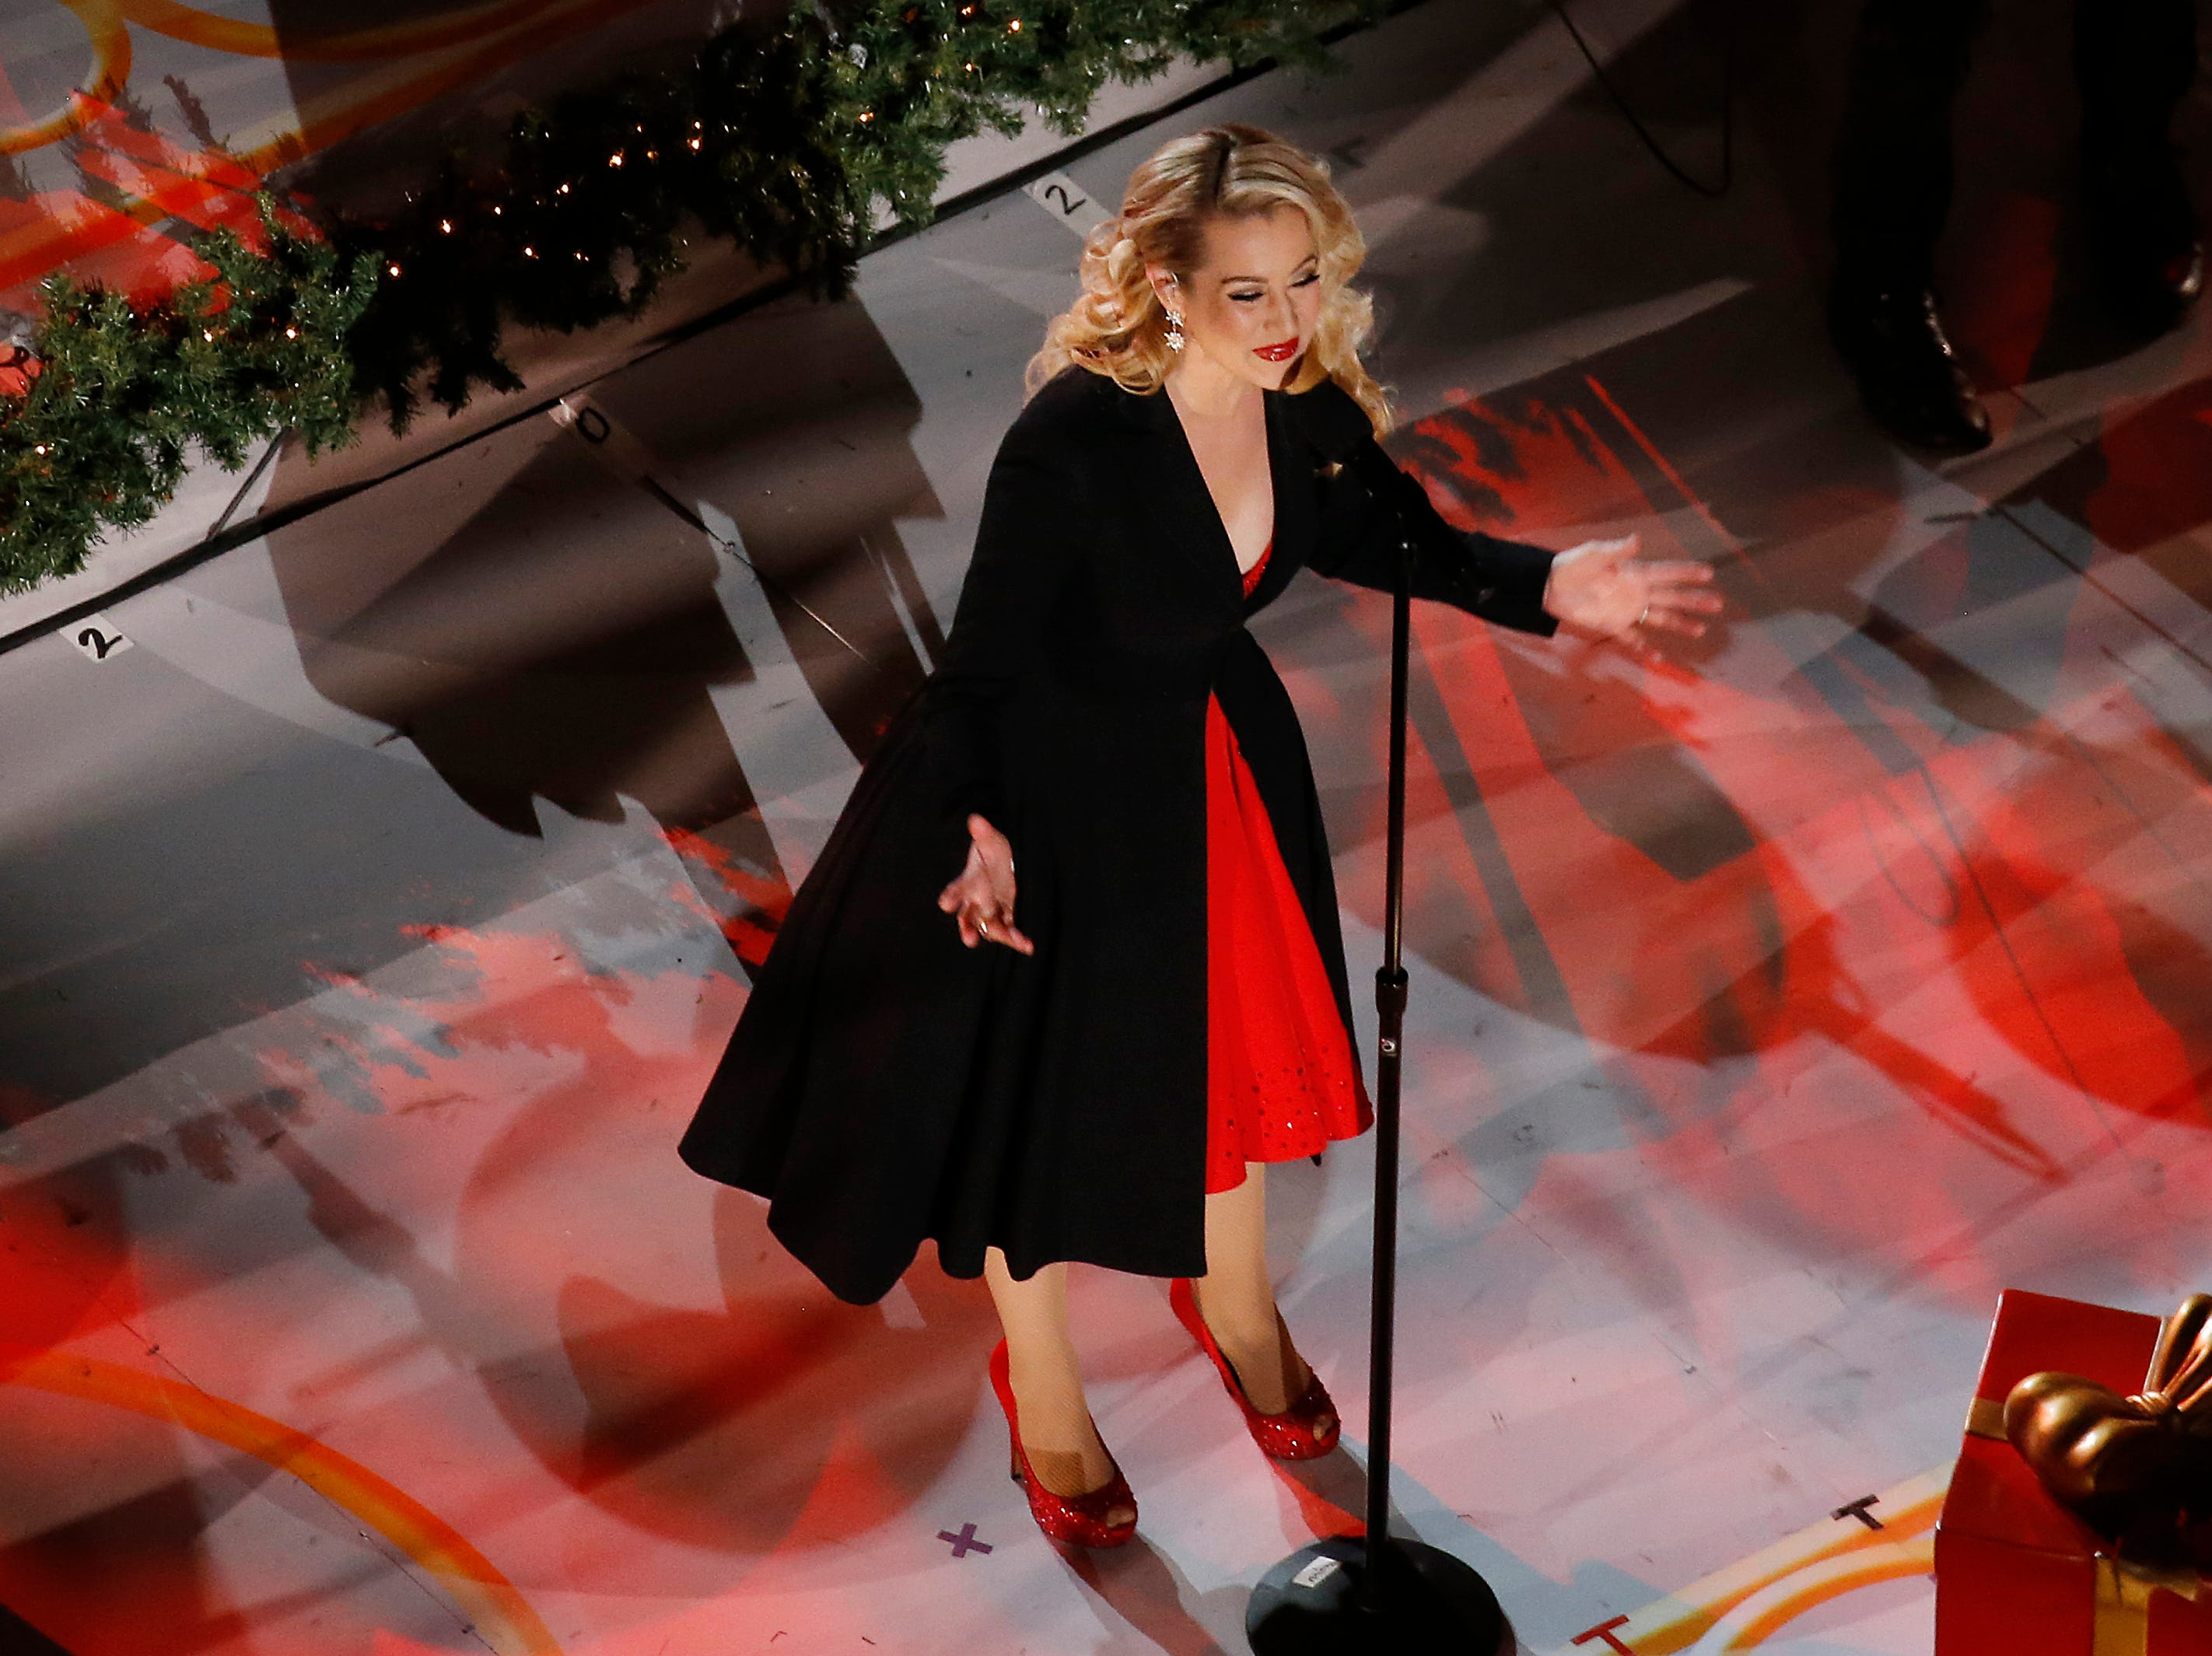 NEW YORK, NEW YORK - NOVEMBER 28: Kellie Pickler performs  before the  86th Annual Rockefeller Center Christmas Tree Lighting Ceremony at Rockefeller Center on November 28, 2018 in New York City. (Photo by John Lamparski/Getty Images)